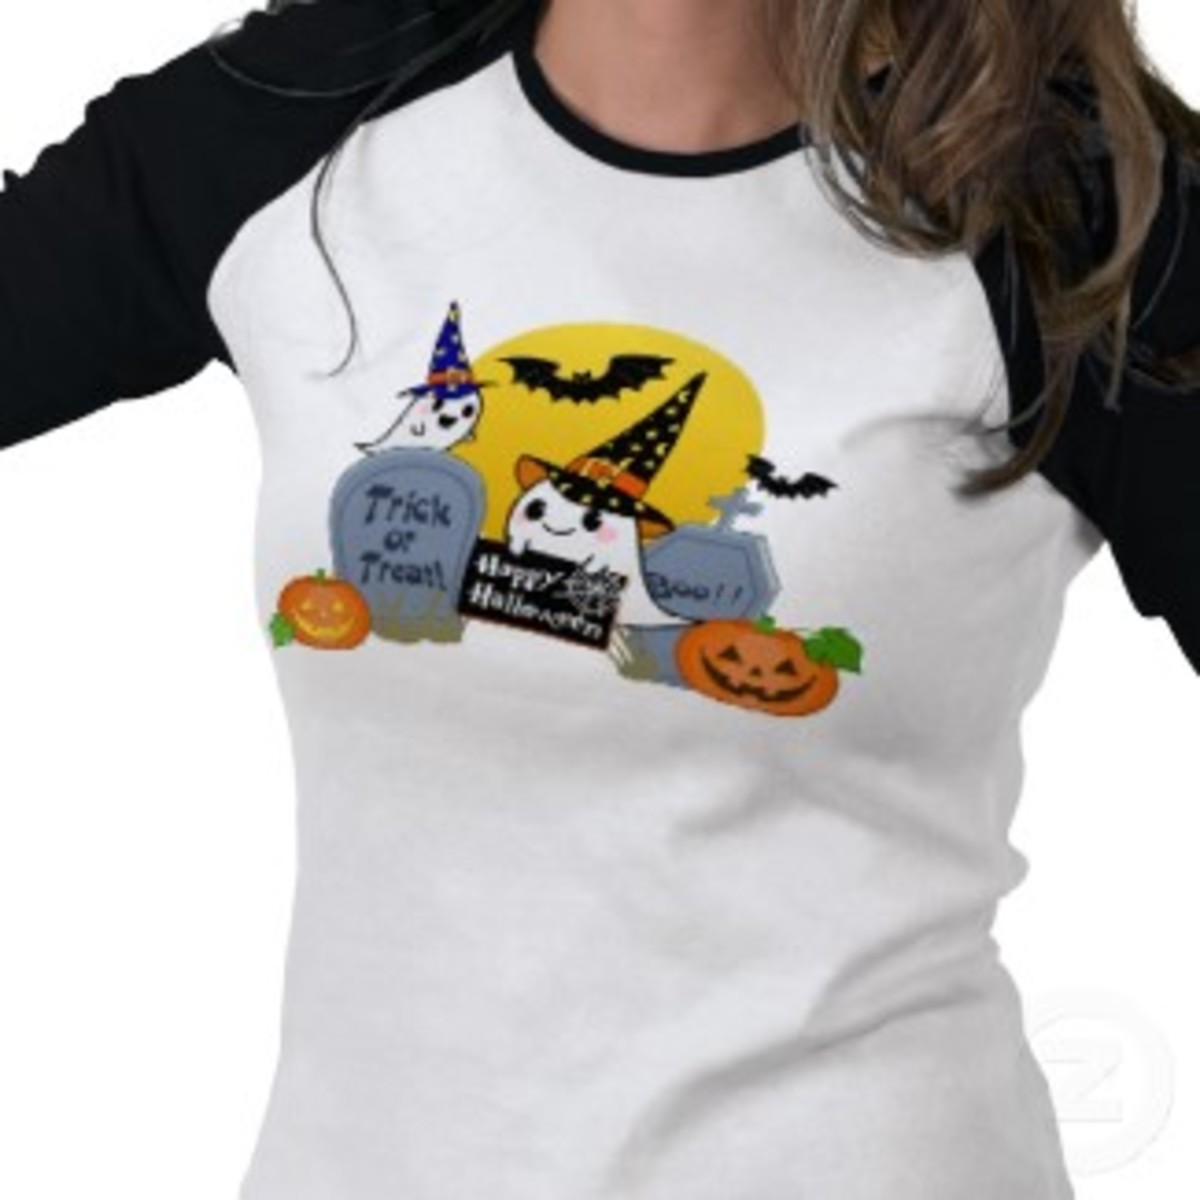 And the cutest tee for teens or the young at heart!  Trick or Treat long sleeved shirt created by kawaiiclub_apparel on Zazzle